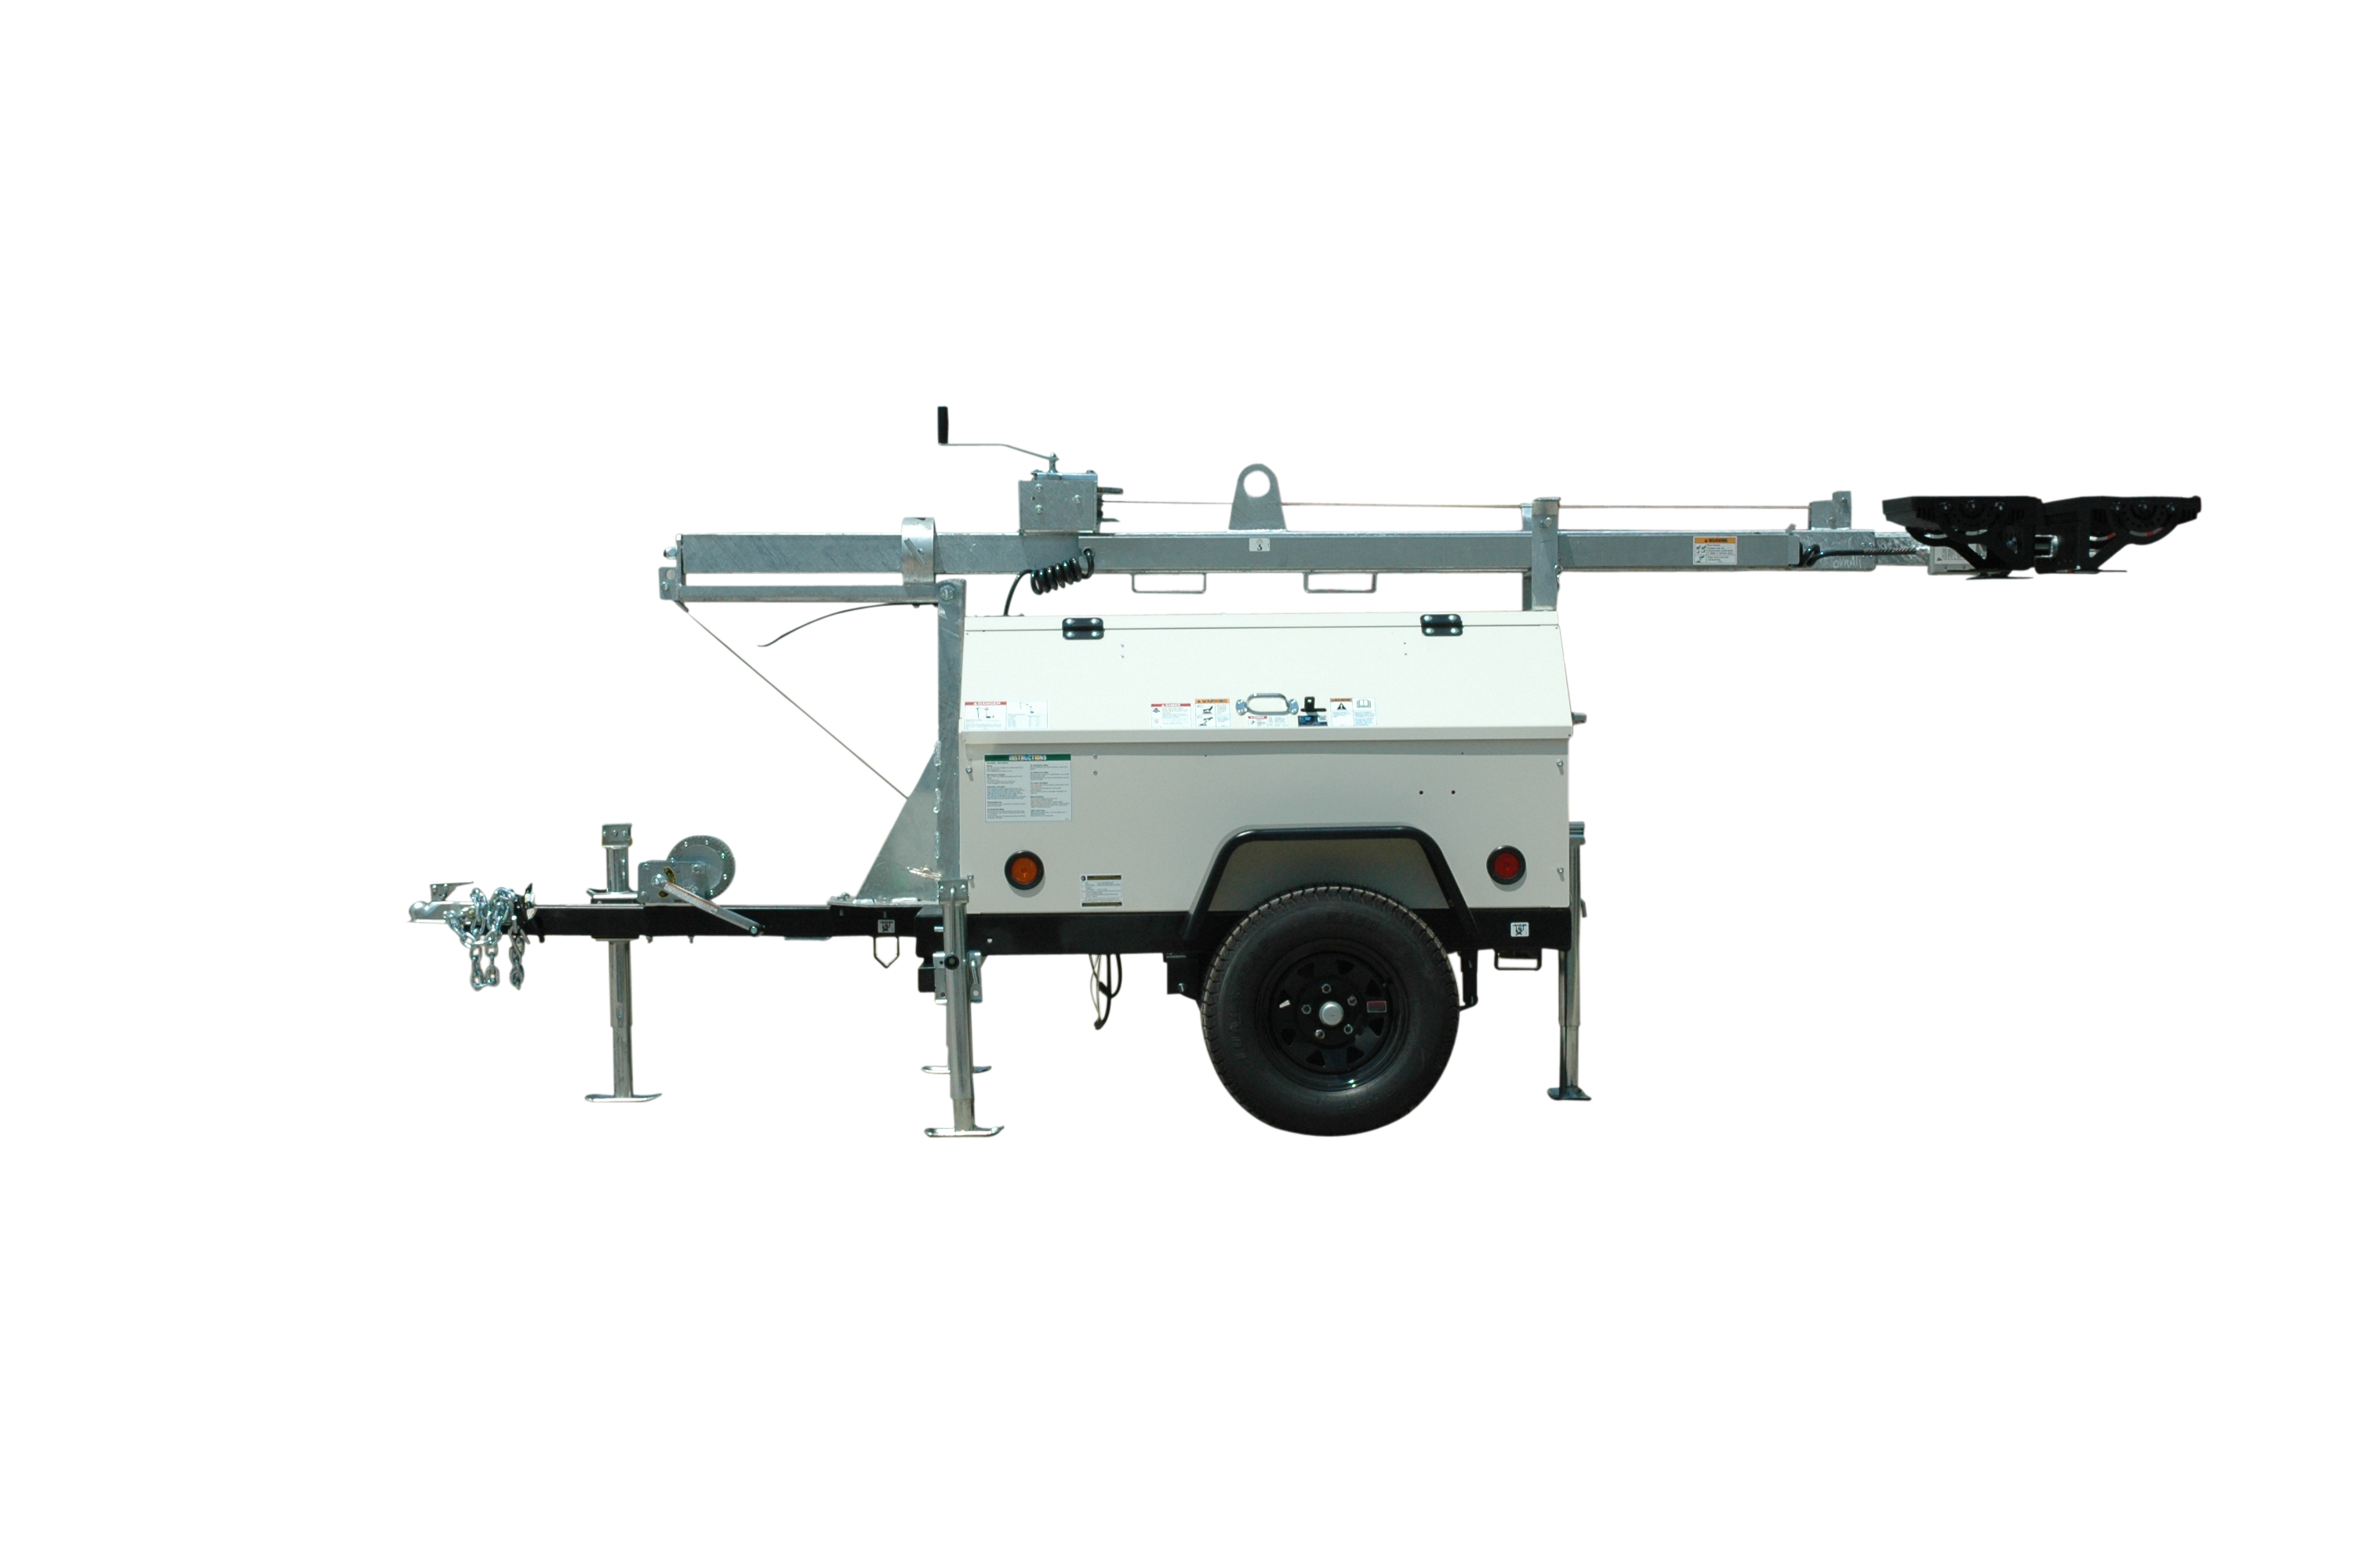 Mobile LED Light Tower with Diesel Generator Released by Larson